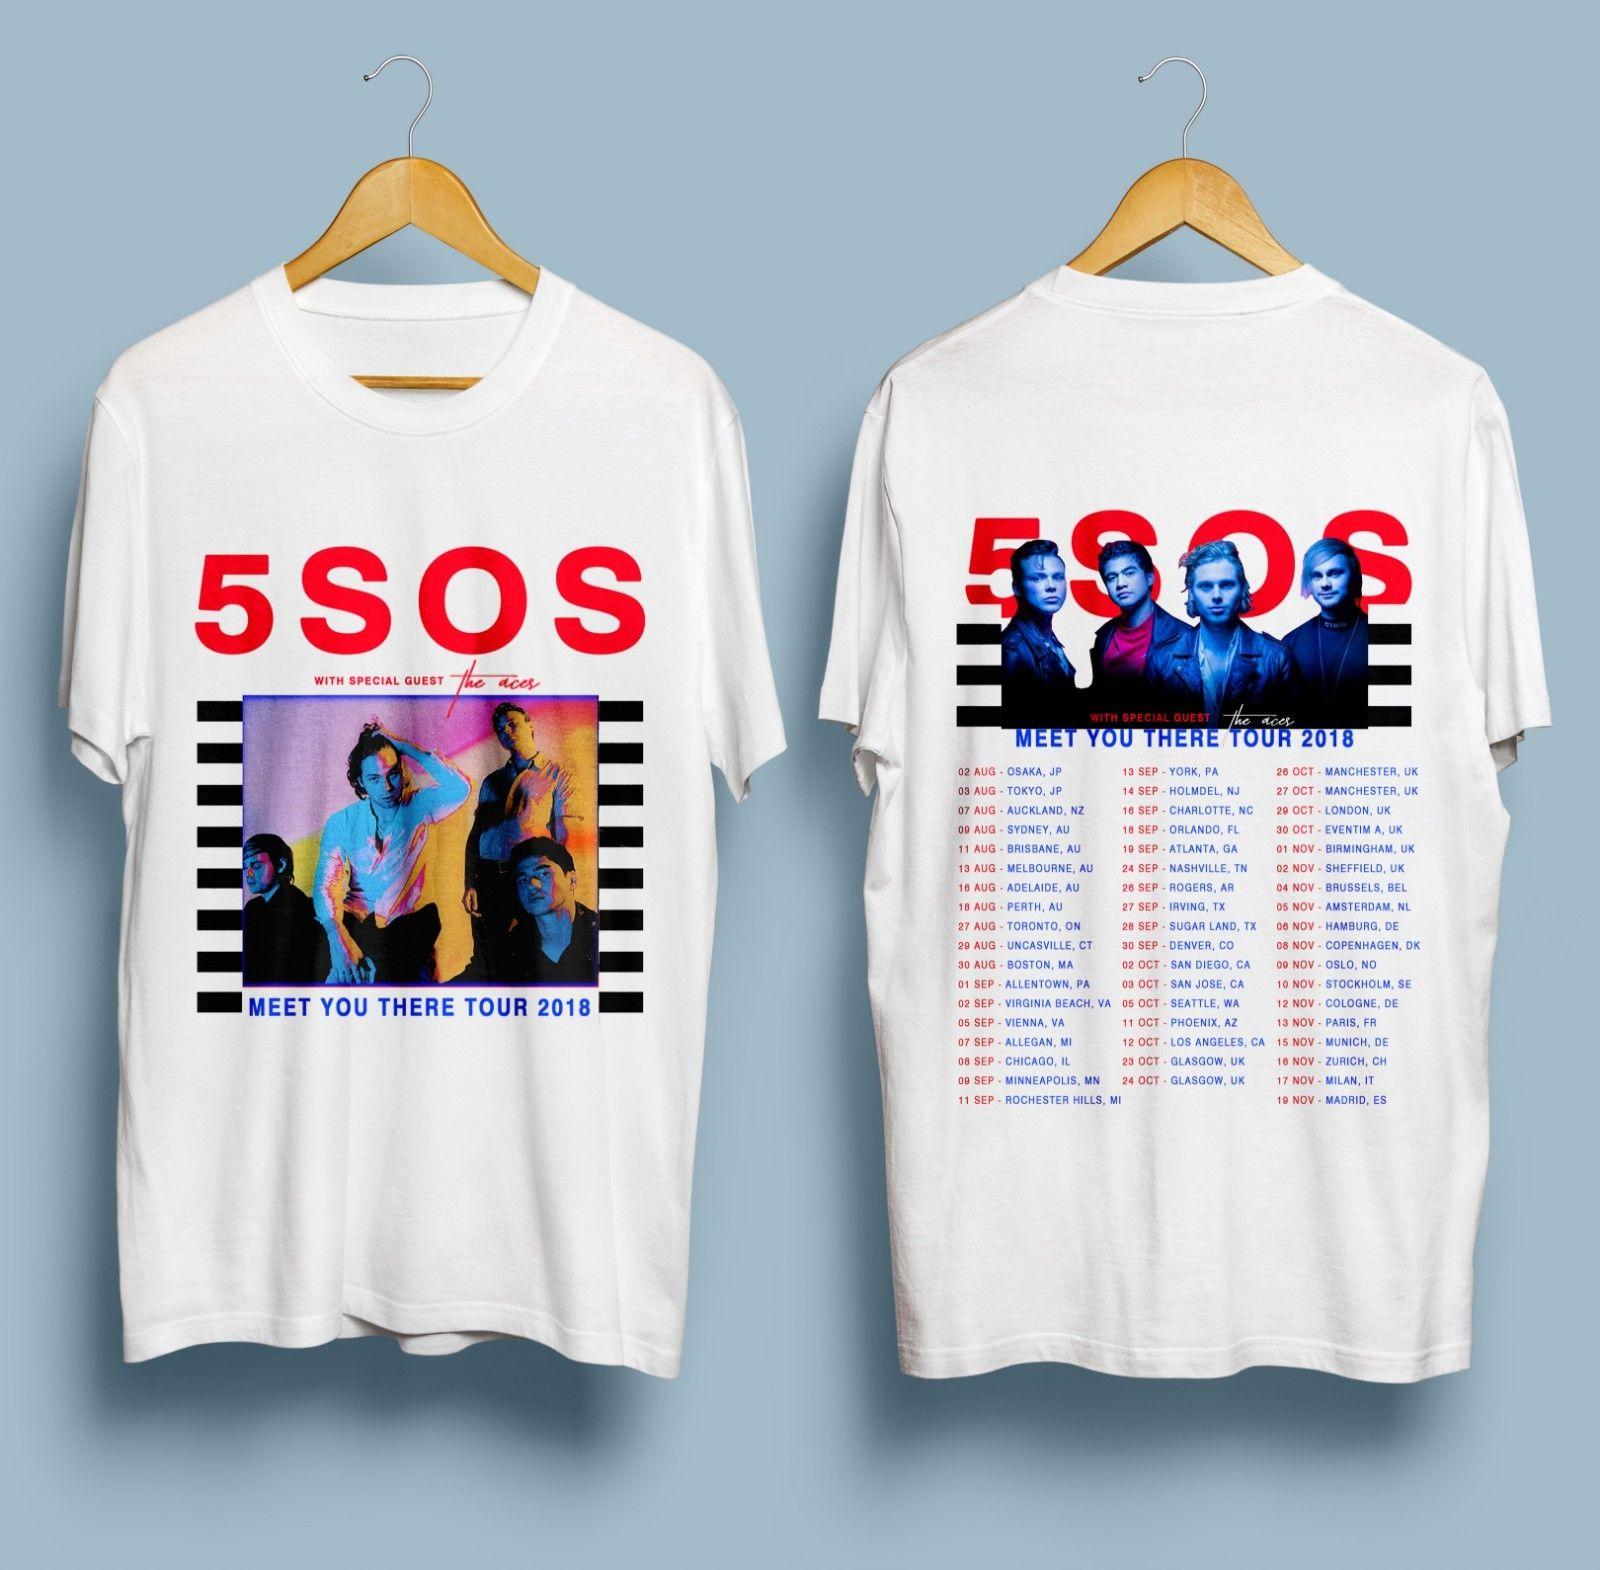 e5cd0caf9a96 New 5 Seconds Of Summer 5SOS T-Shirt Meet You There Tour Dates 2018 ...